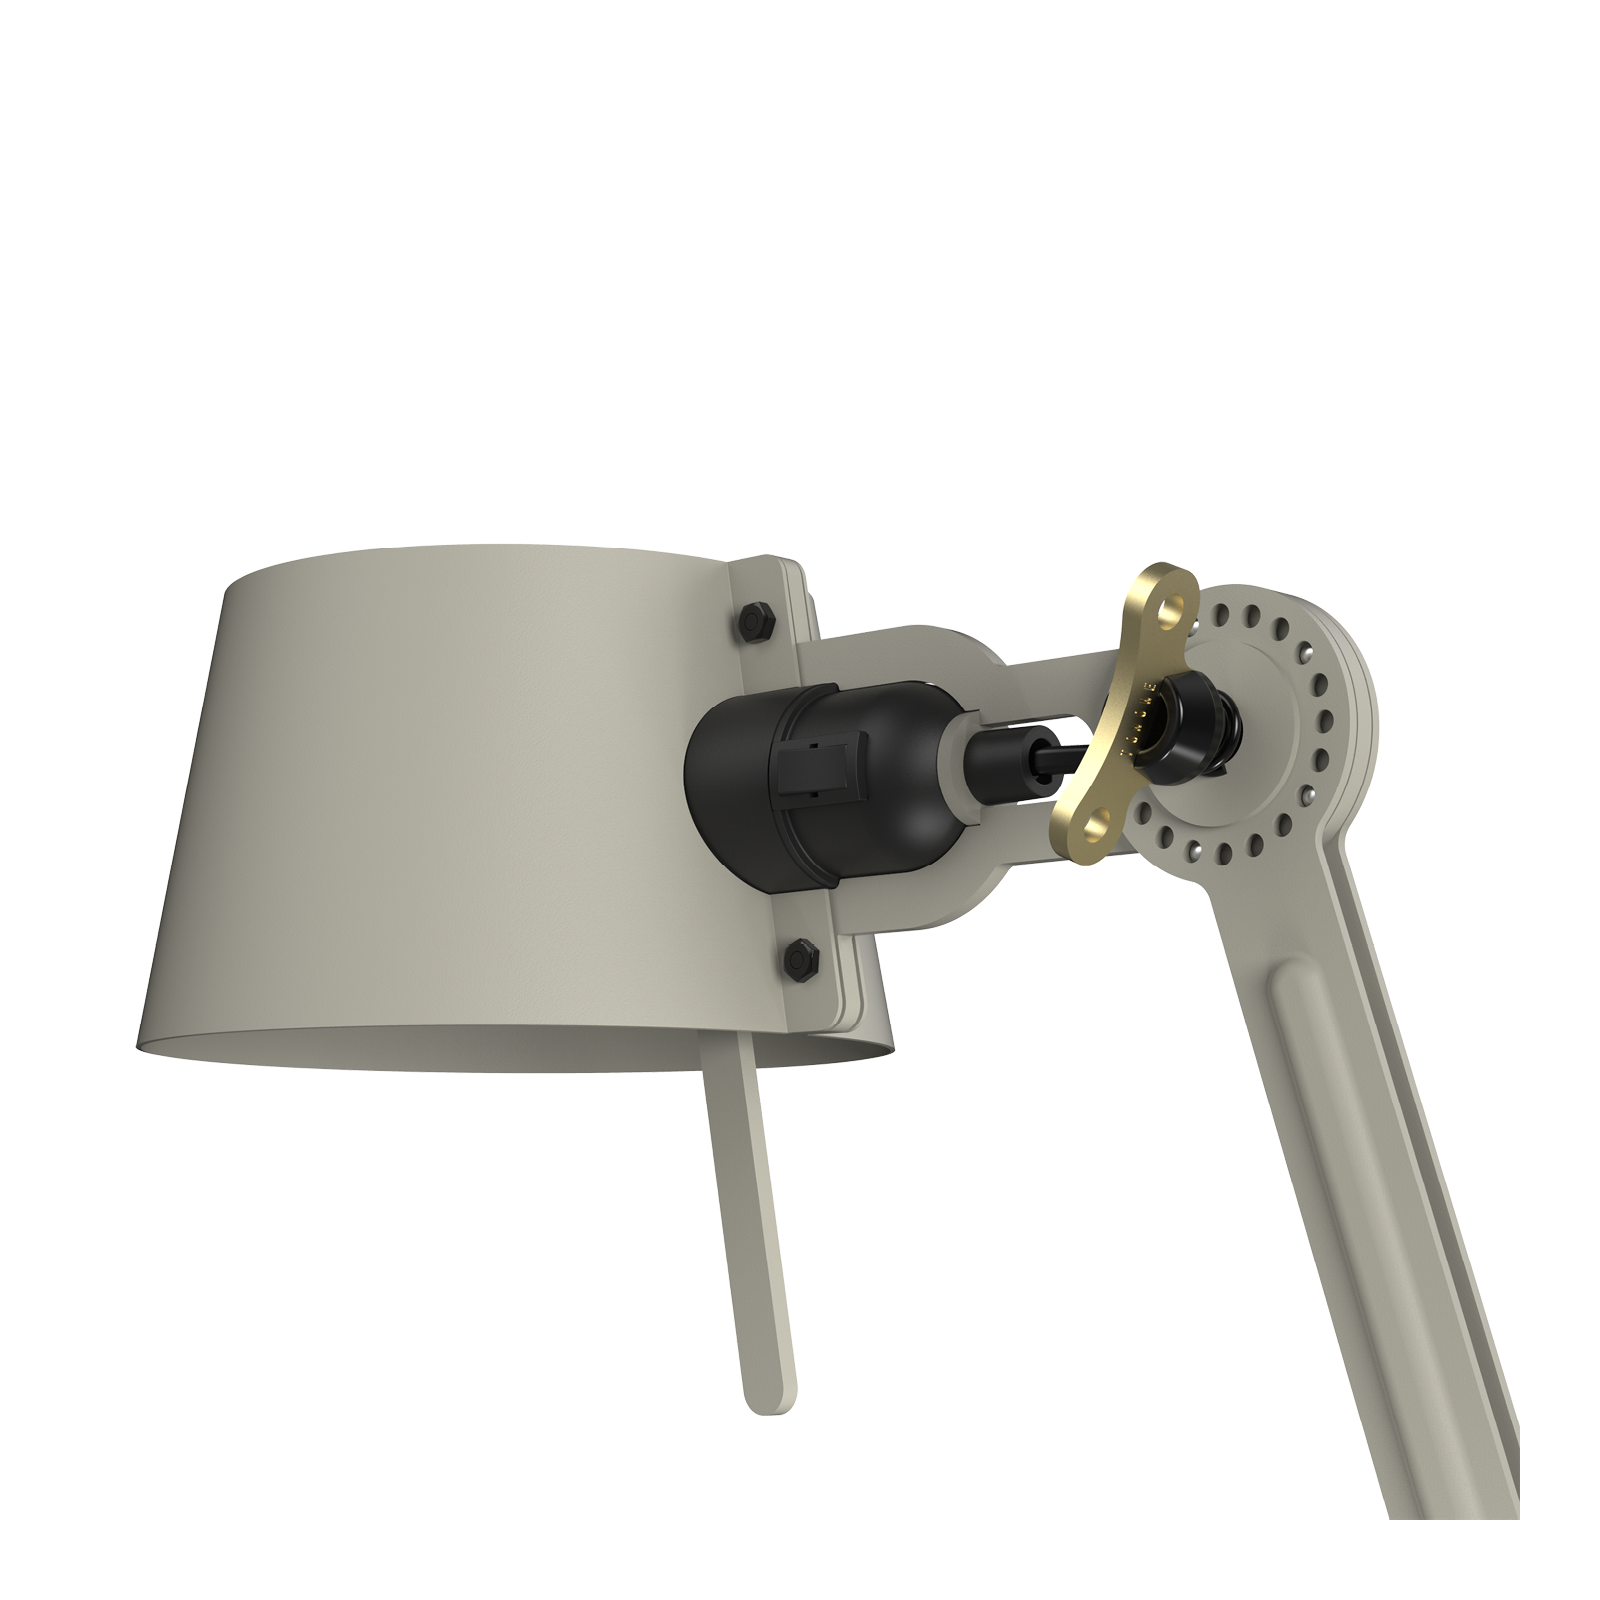 bolt desk 1arm clamp